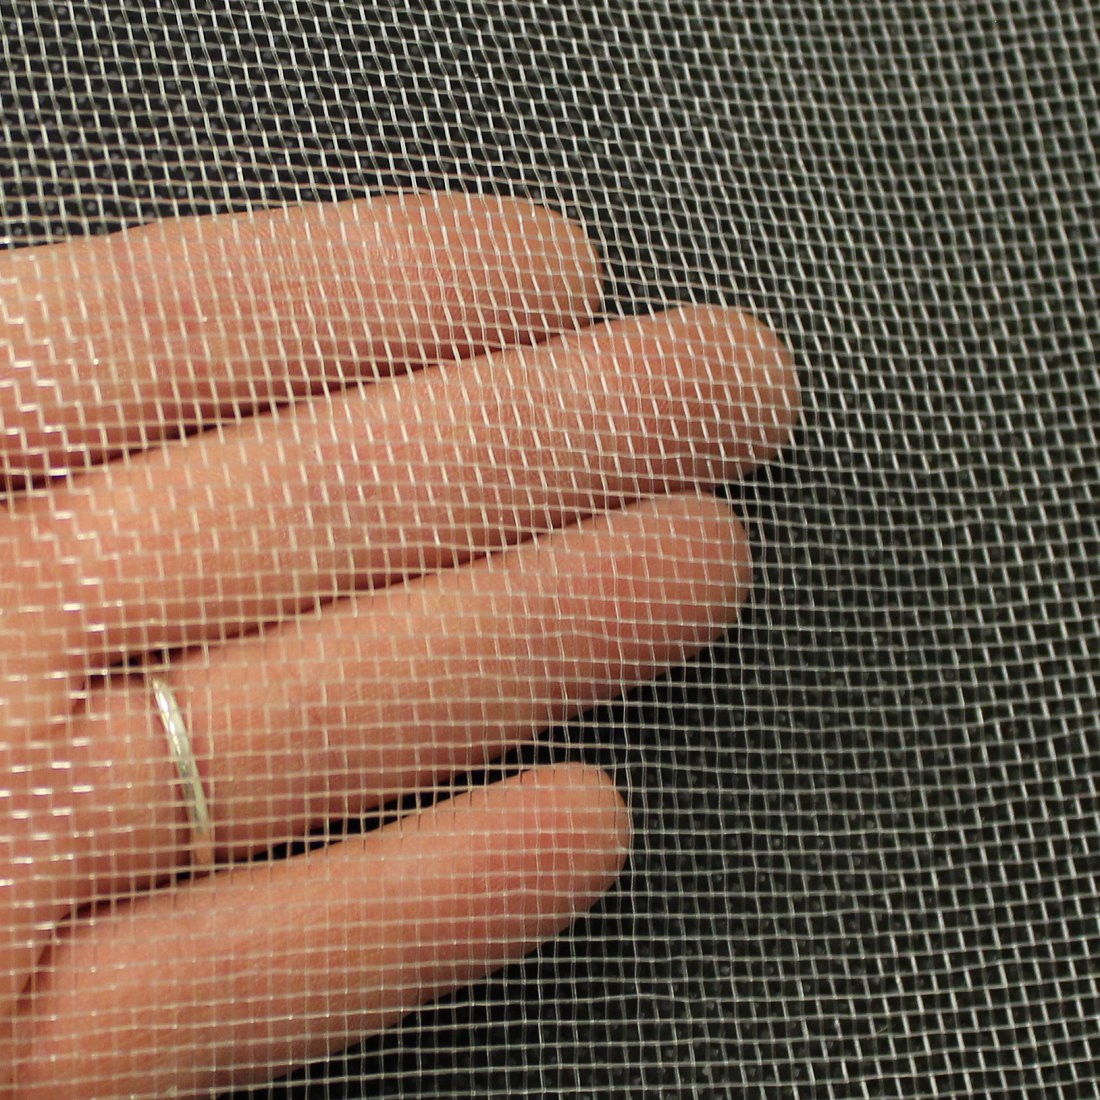 Insect Mesh Woven Fine Mesh - 1.6mm